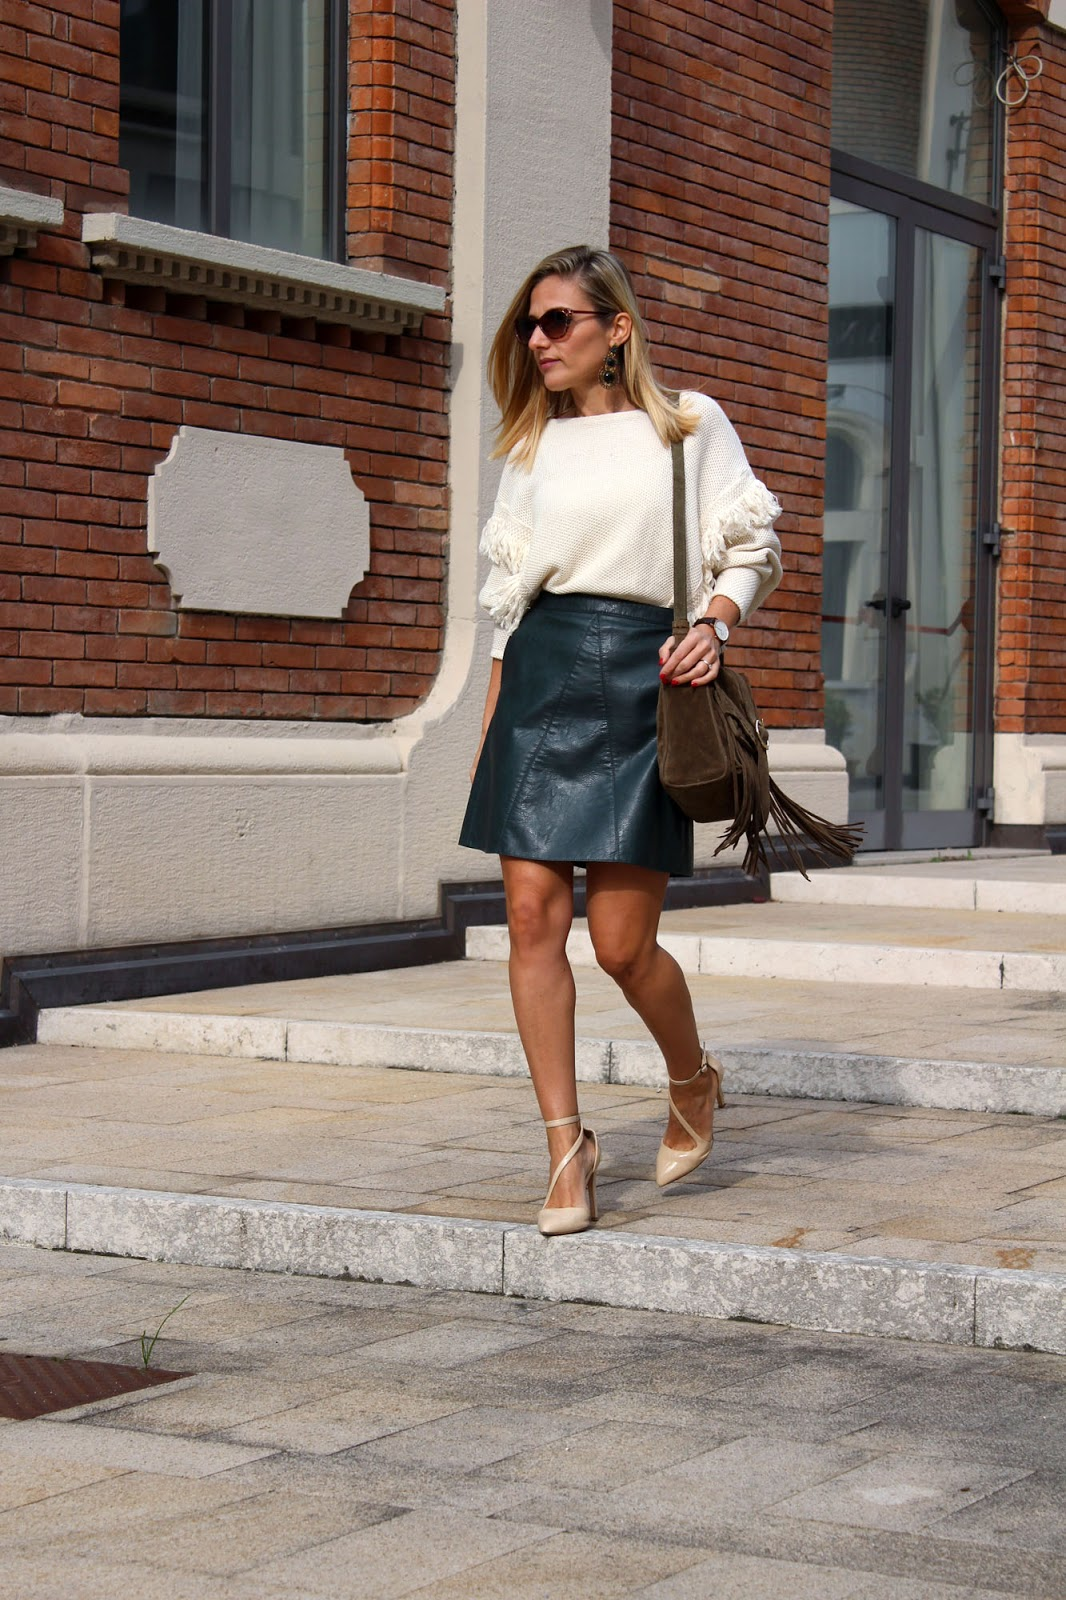 Eniwhere Fashion - green skirt and a fringe bag